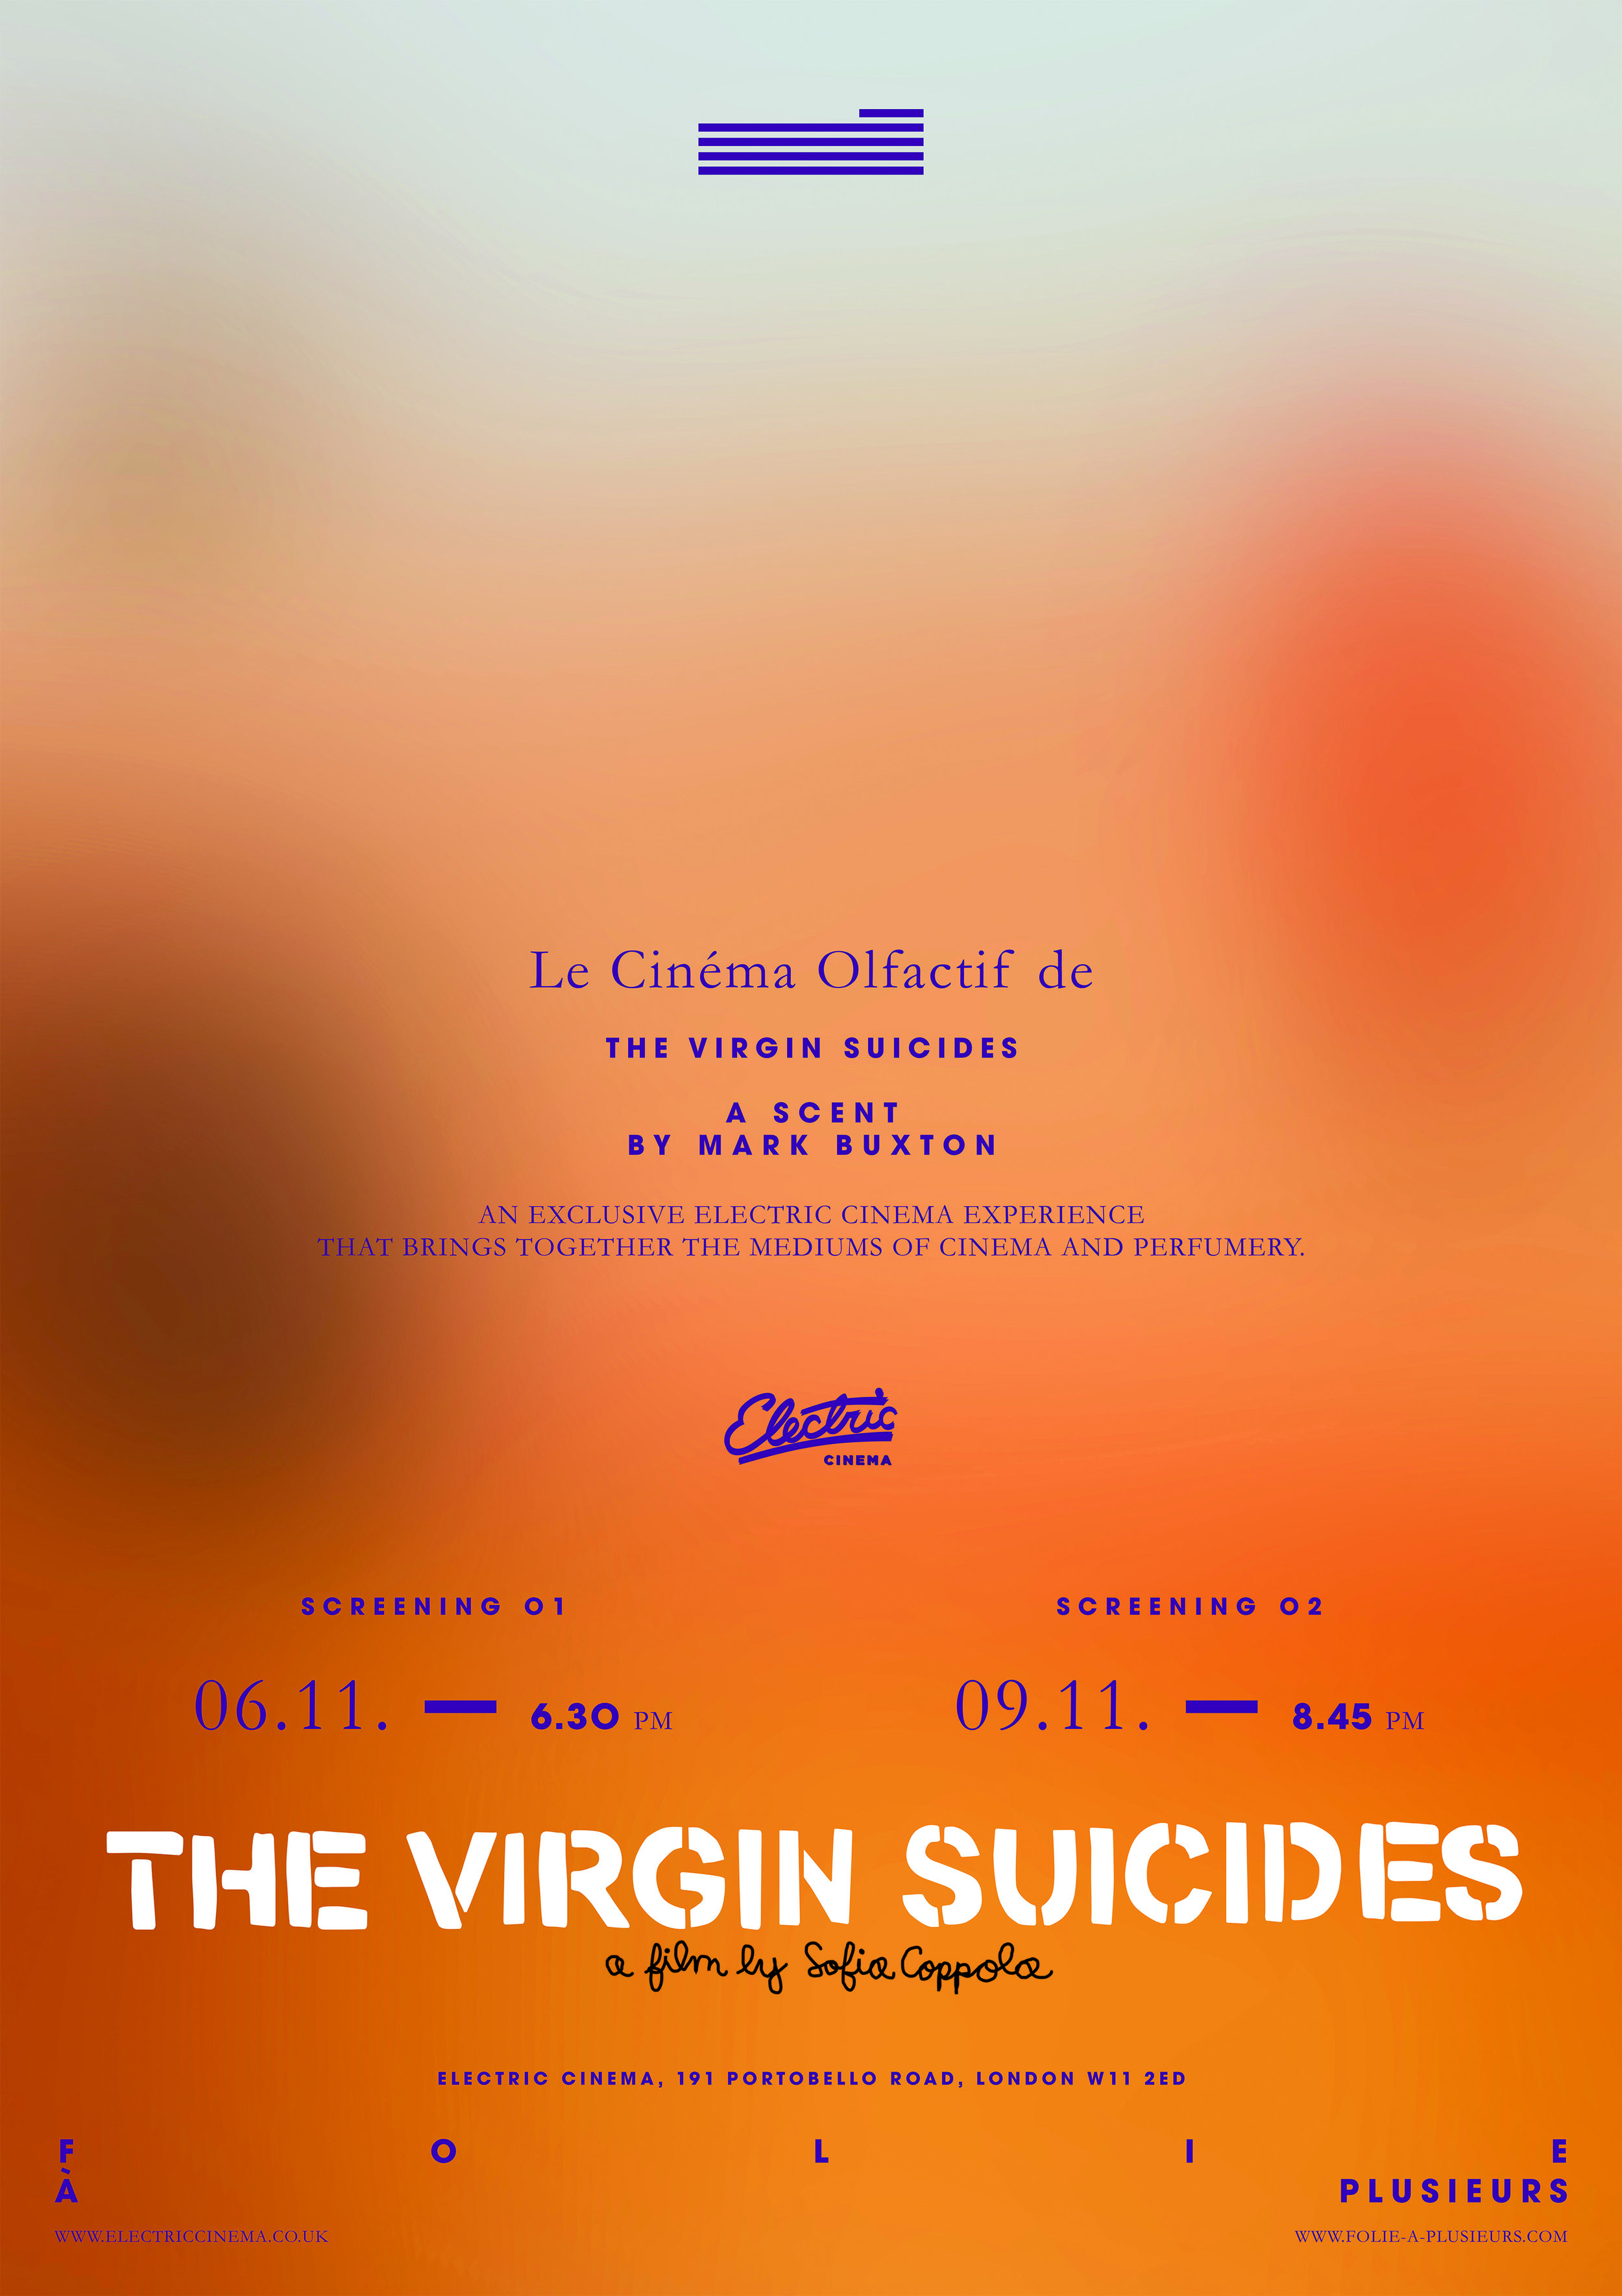 The_Virgin_Suicides_Perfume_Folie-A-Plusieurs.jpg